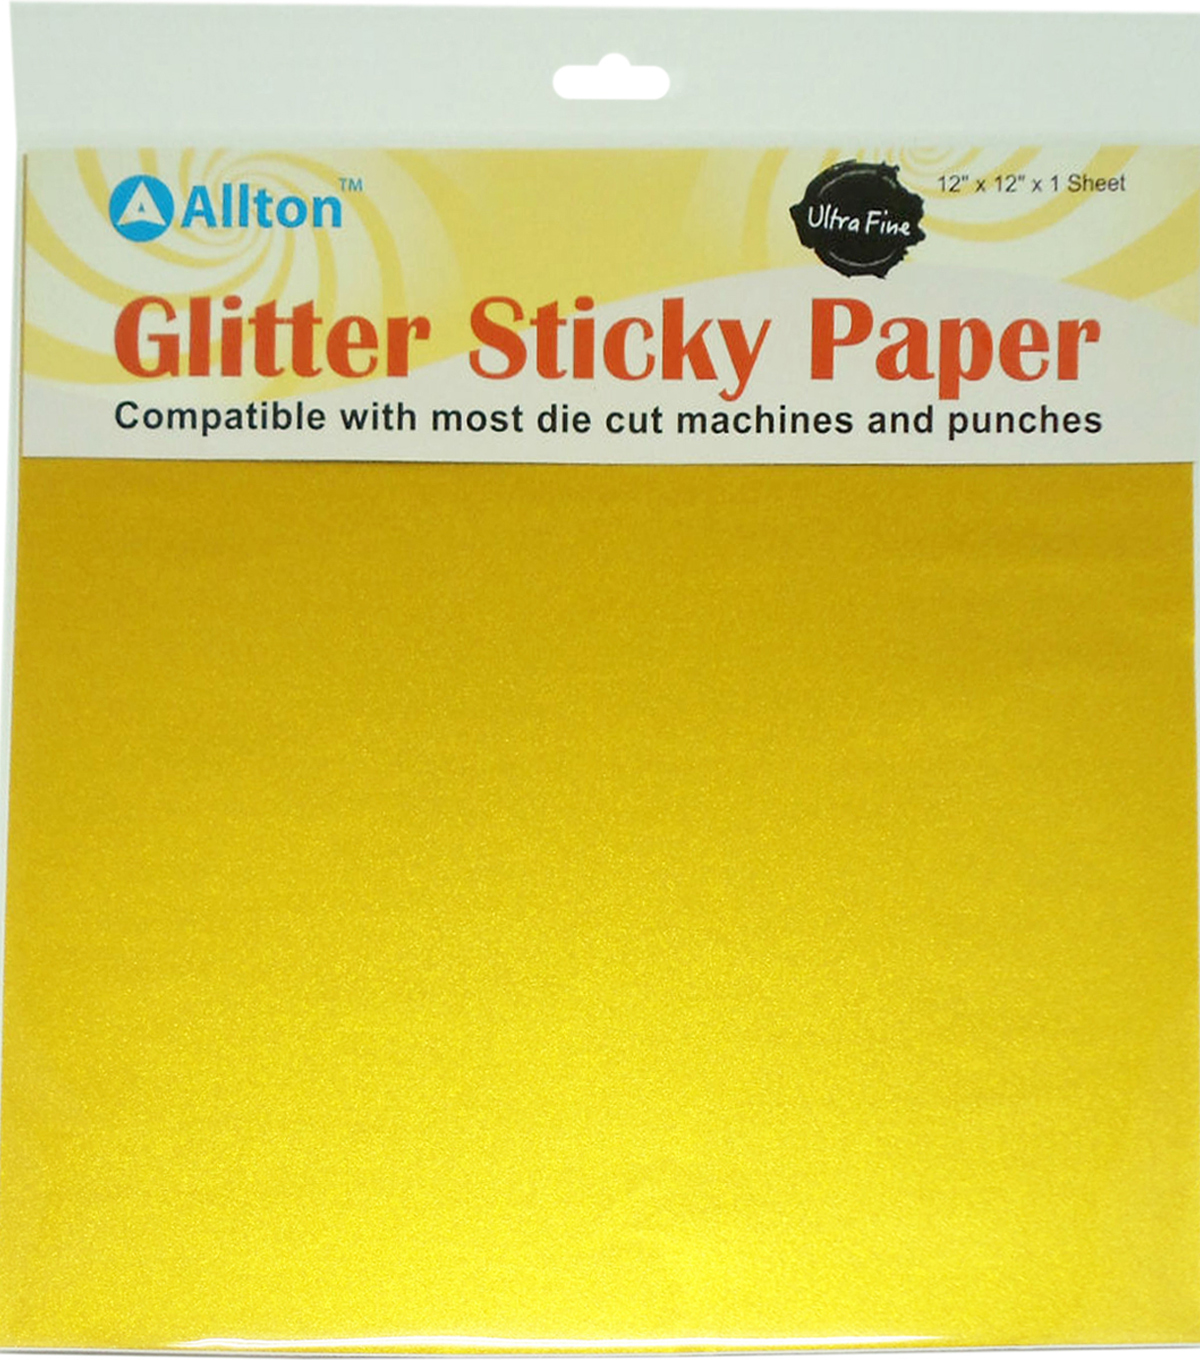 "Allton 12""X12"" Ultra Fine Glitter Sticky Paper-Golden Yellow"